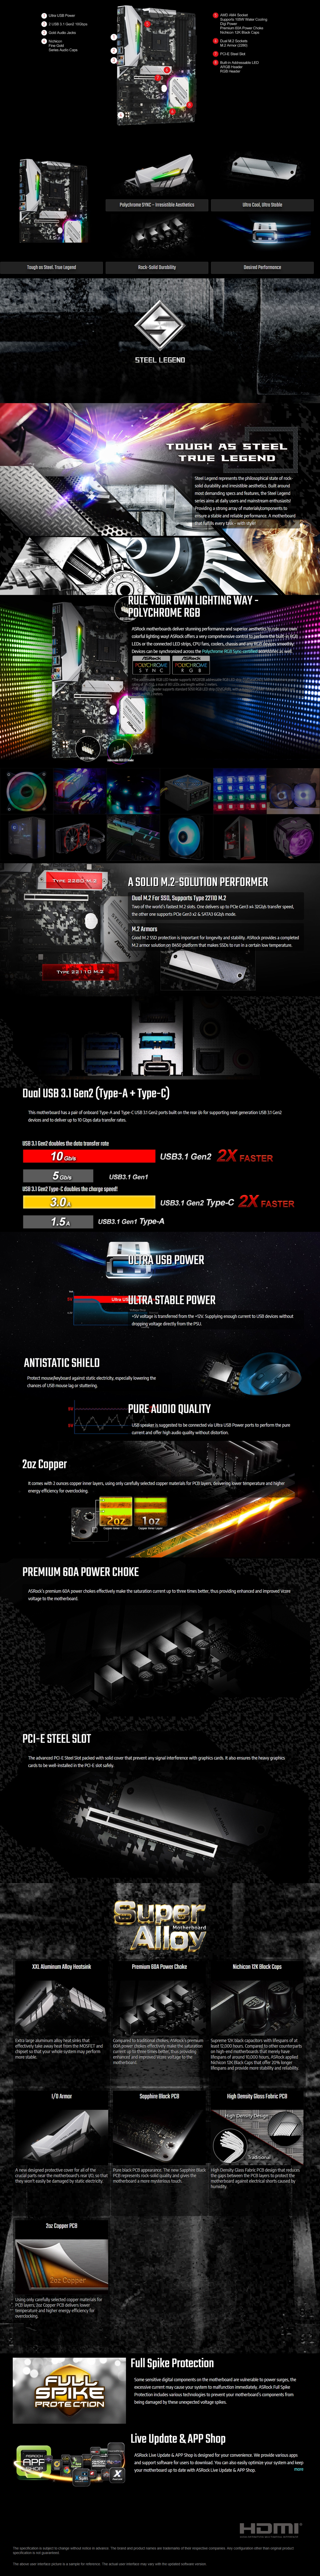 A large marketing image providing additional information about the product ASRock B460 Steel Legend LGA1200 ATX Desktop Motherboard - Additional alt info not provided